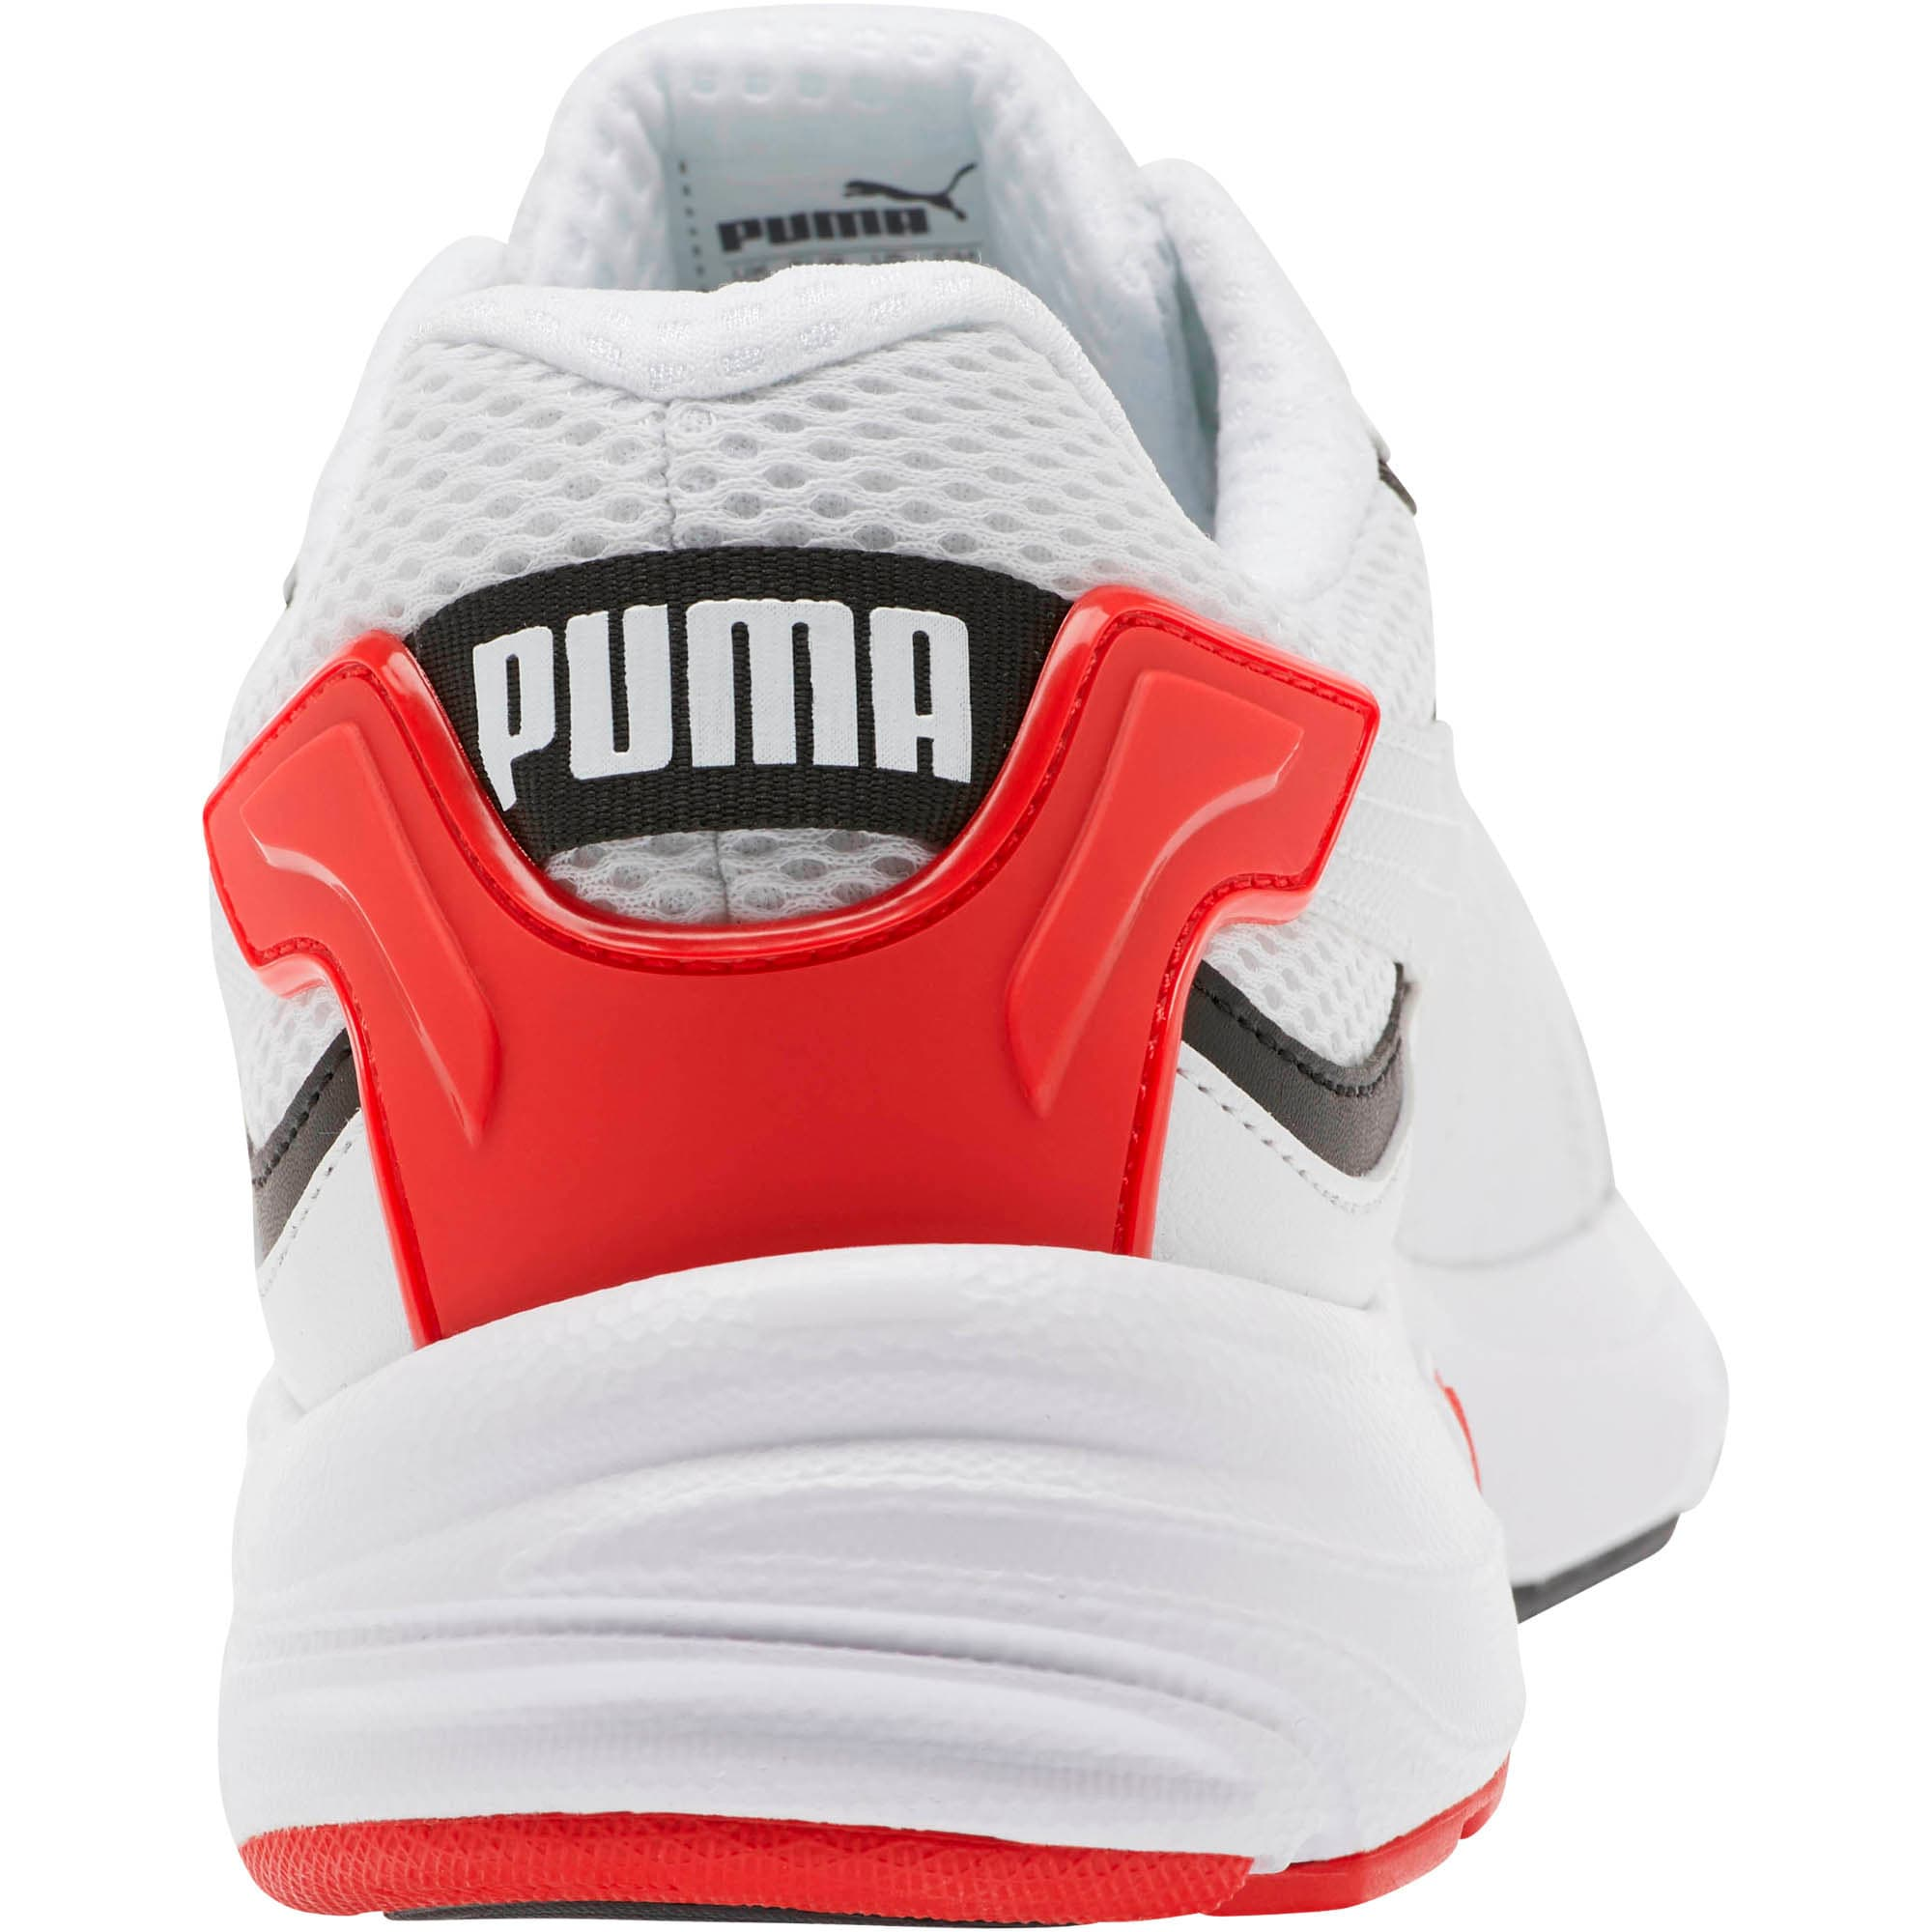 Thumbnail 3 of Axis Plus 90s Sneakers, Puma White-Puma Black-Red, medium